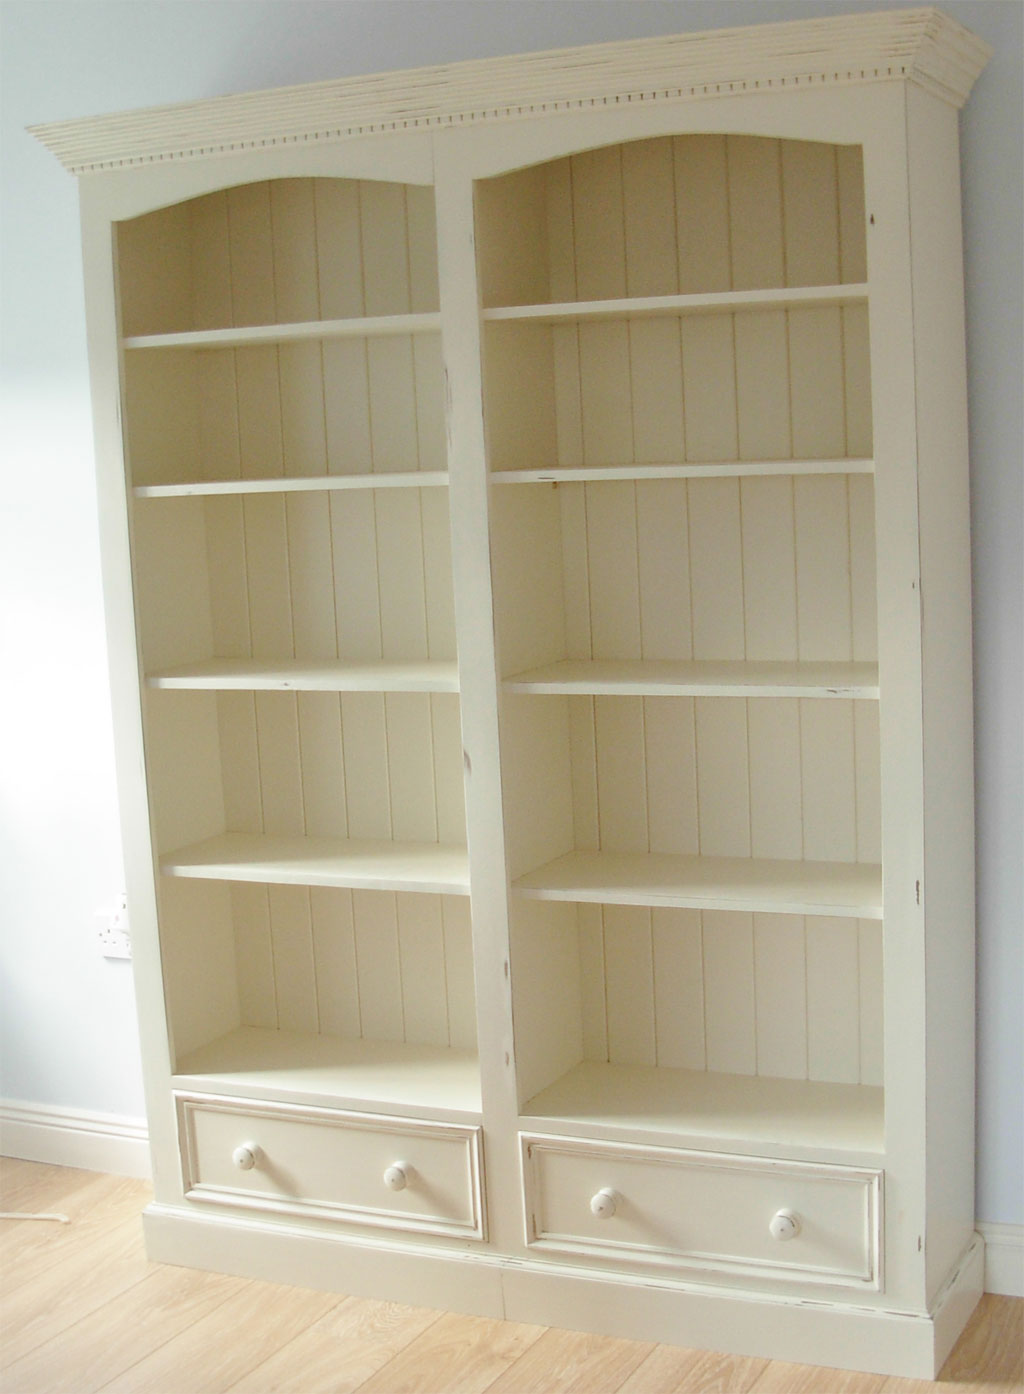 Deanery Classic 2 Bay 2 Door Bookcase with Distressed Hand-painted finish